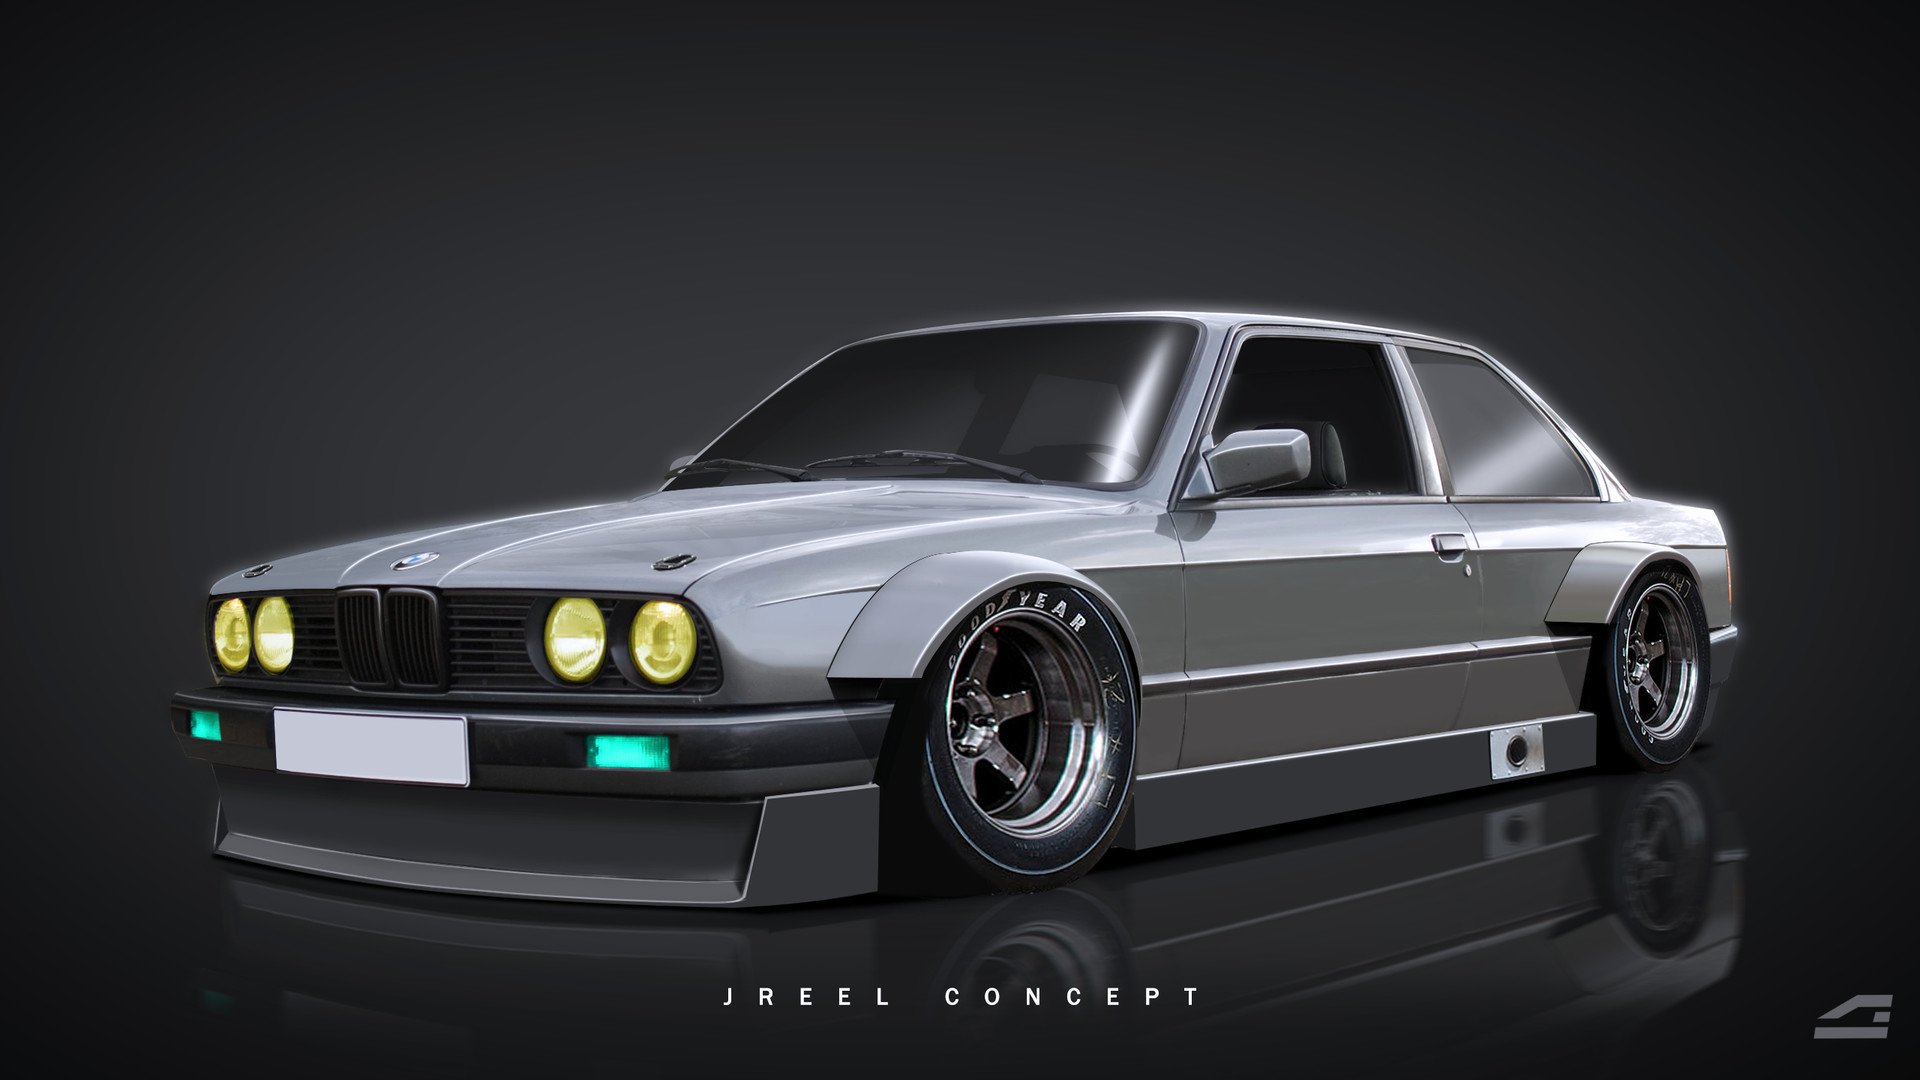 Bmw E30 M3 Hd Wallpaper Background Image 1920x1080 Id 958509 Wallpaper Abyss